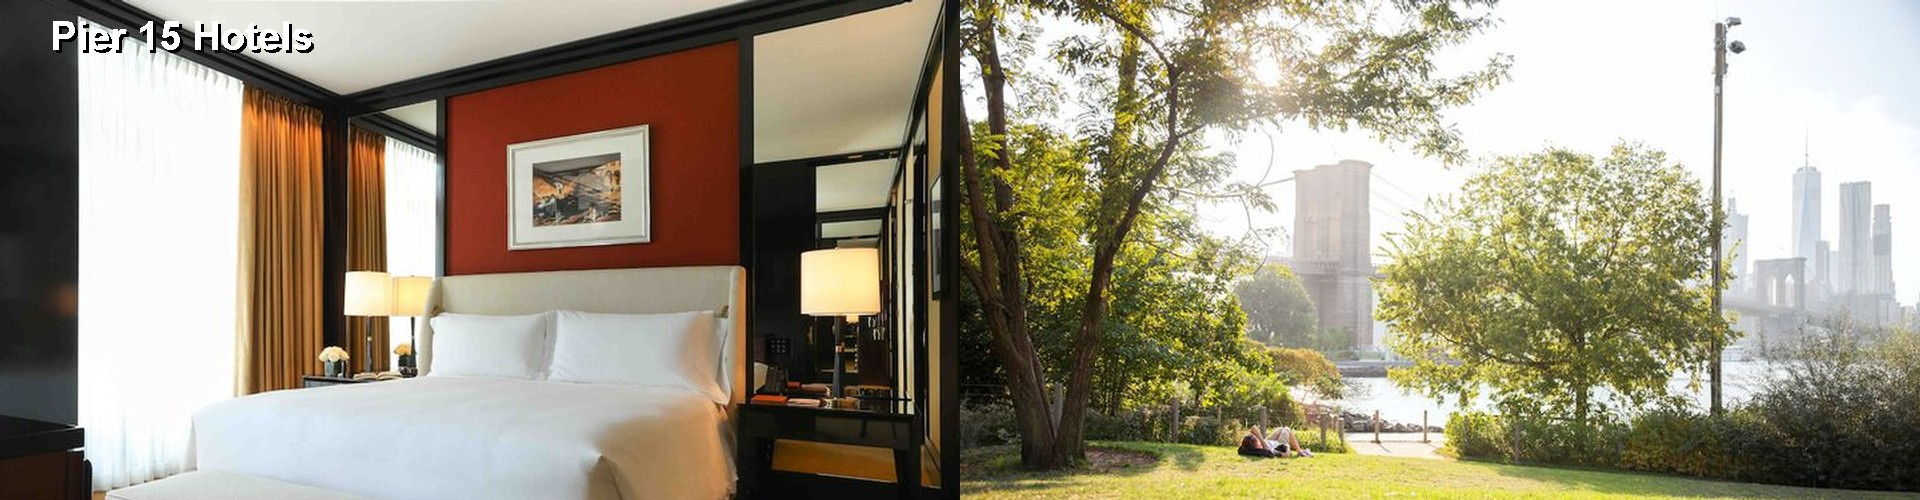 74 hotels near pier 15 in new york city ny for Pier hotel new york